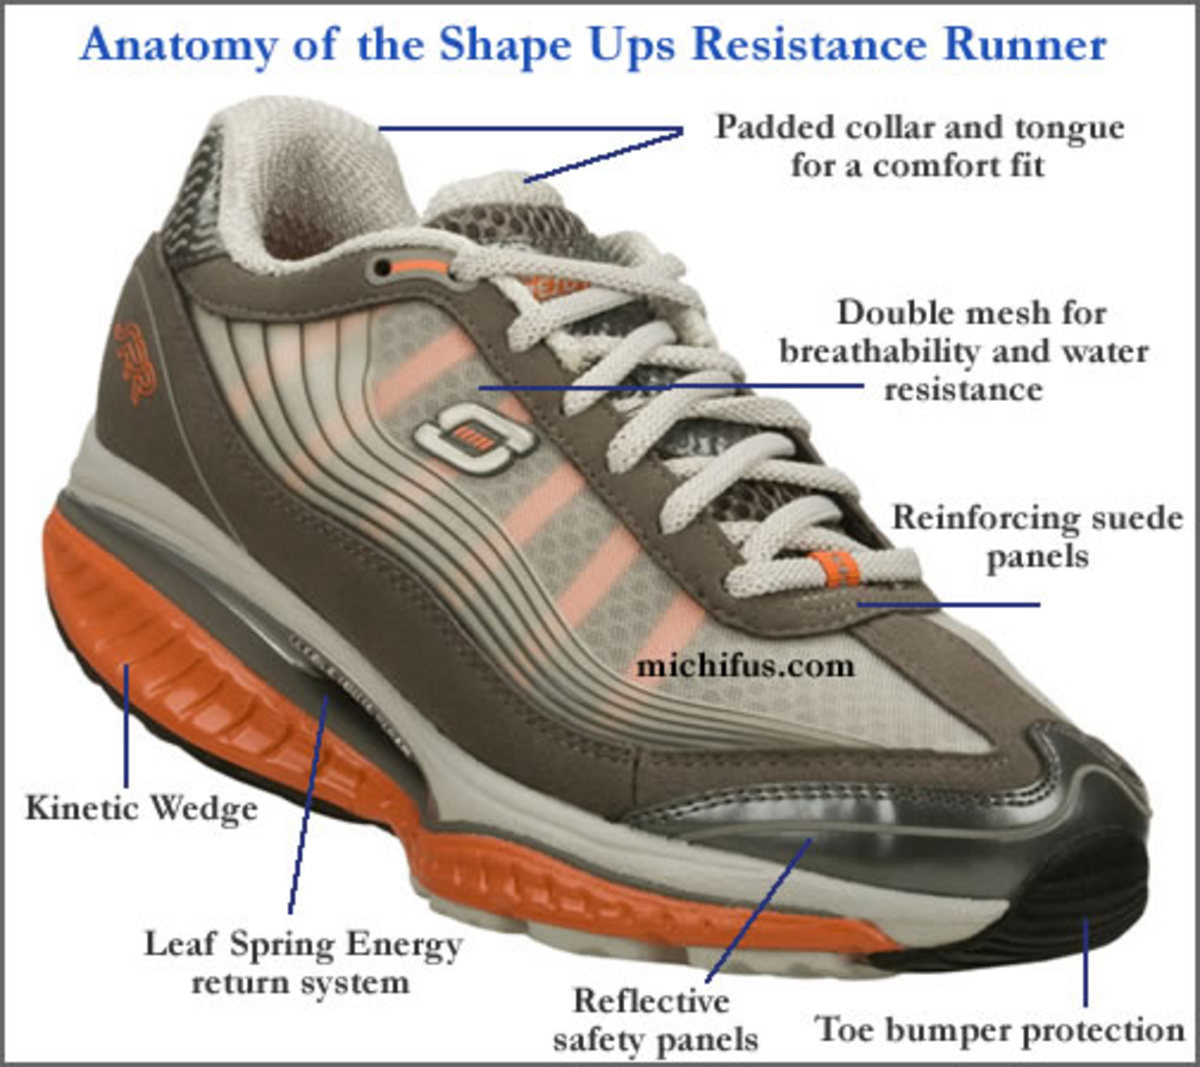 Skechers Shape Ups SRR Features